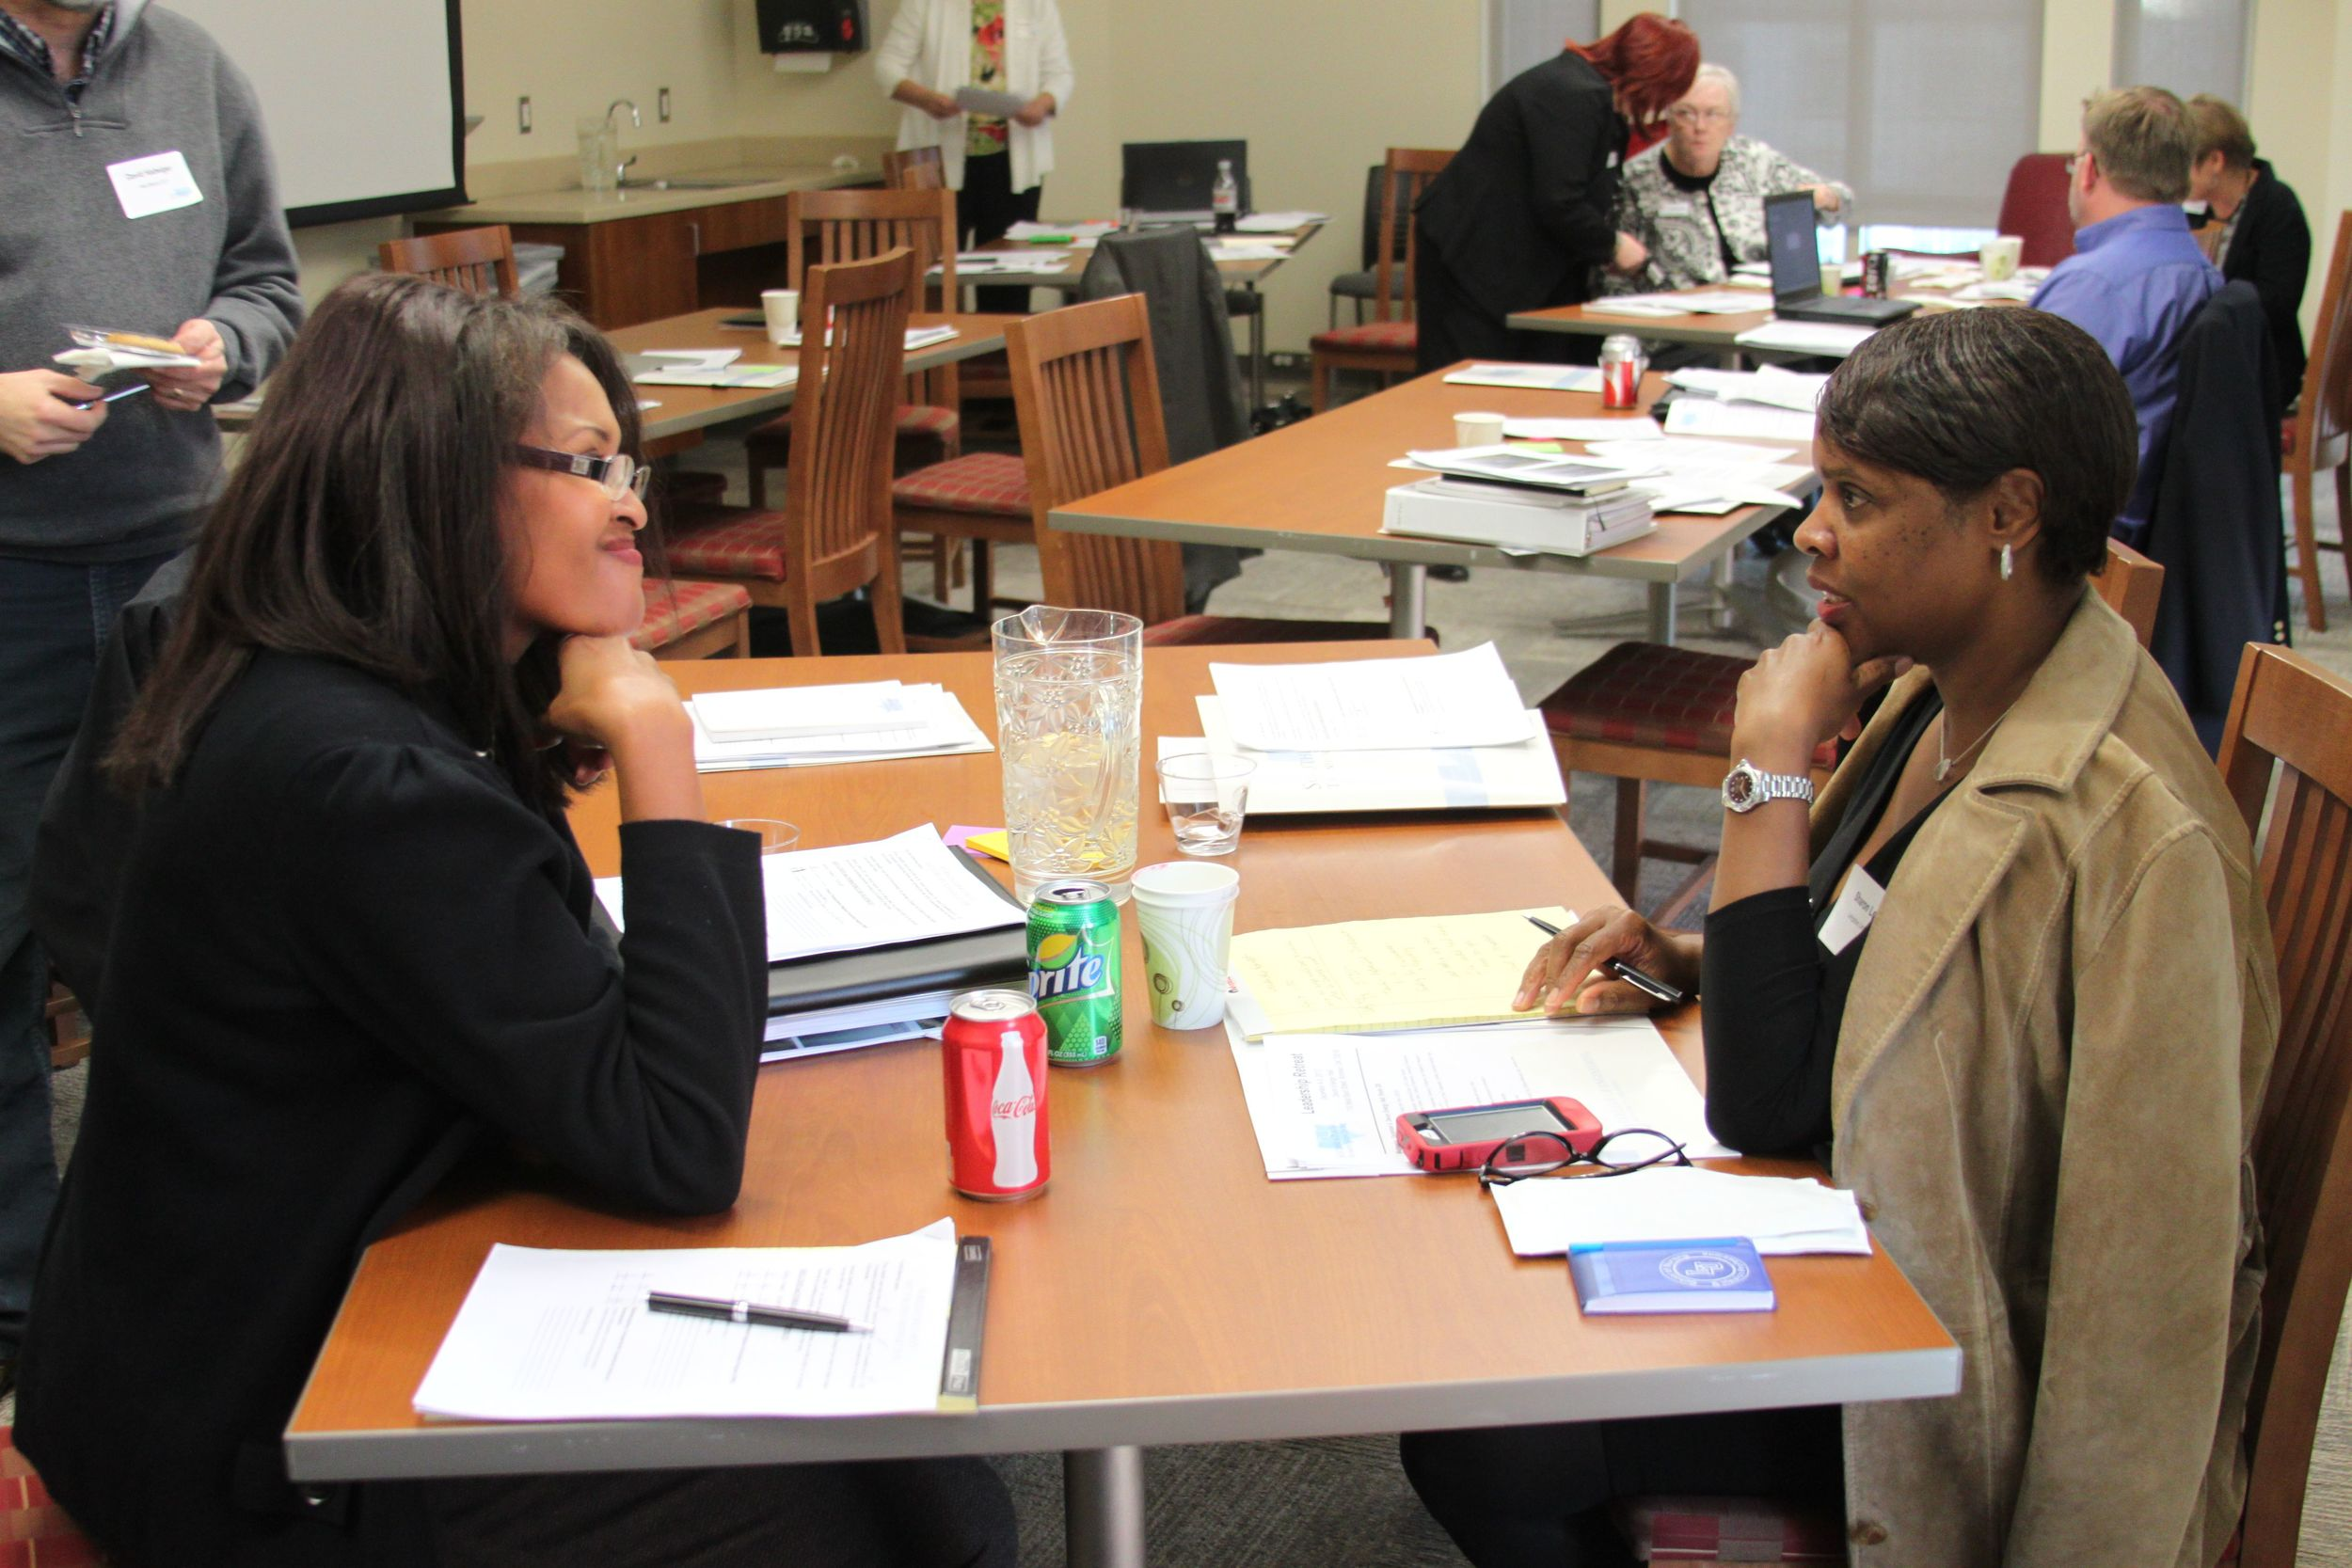 Sharon Lewis, Associate Director from Langston University and a colleague collaborate.